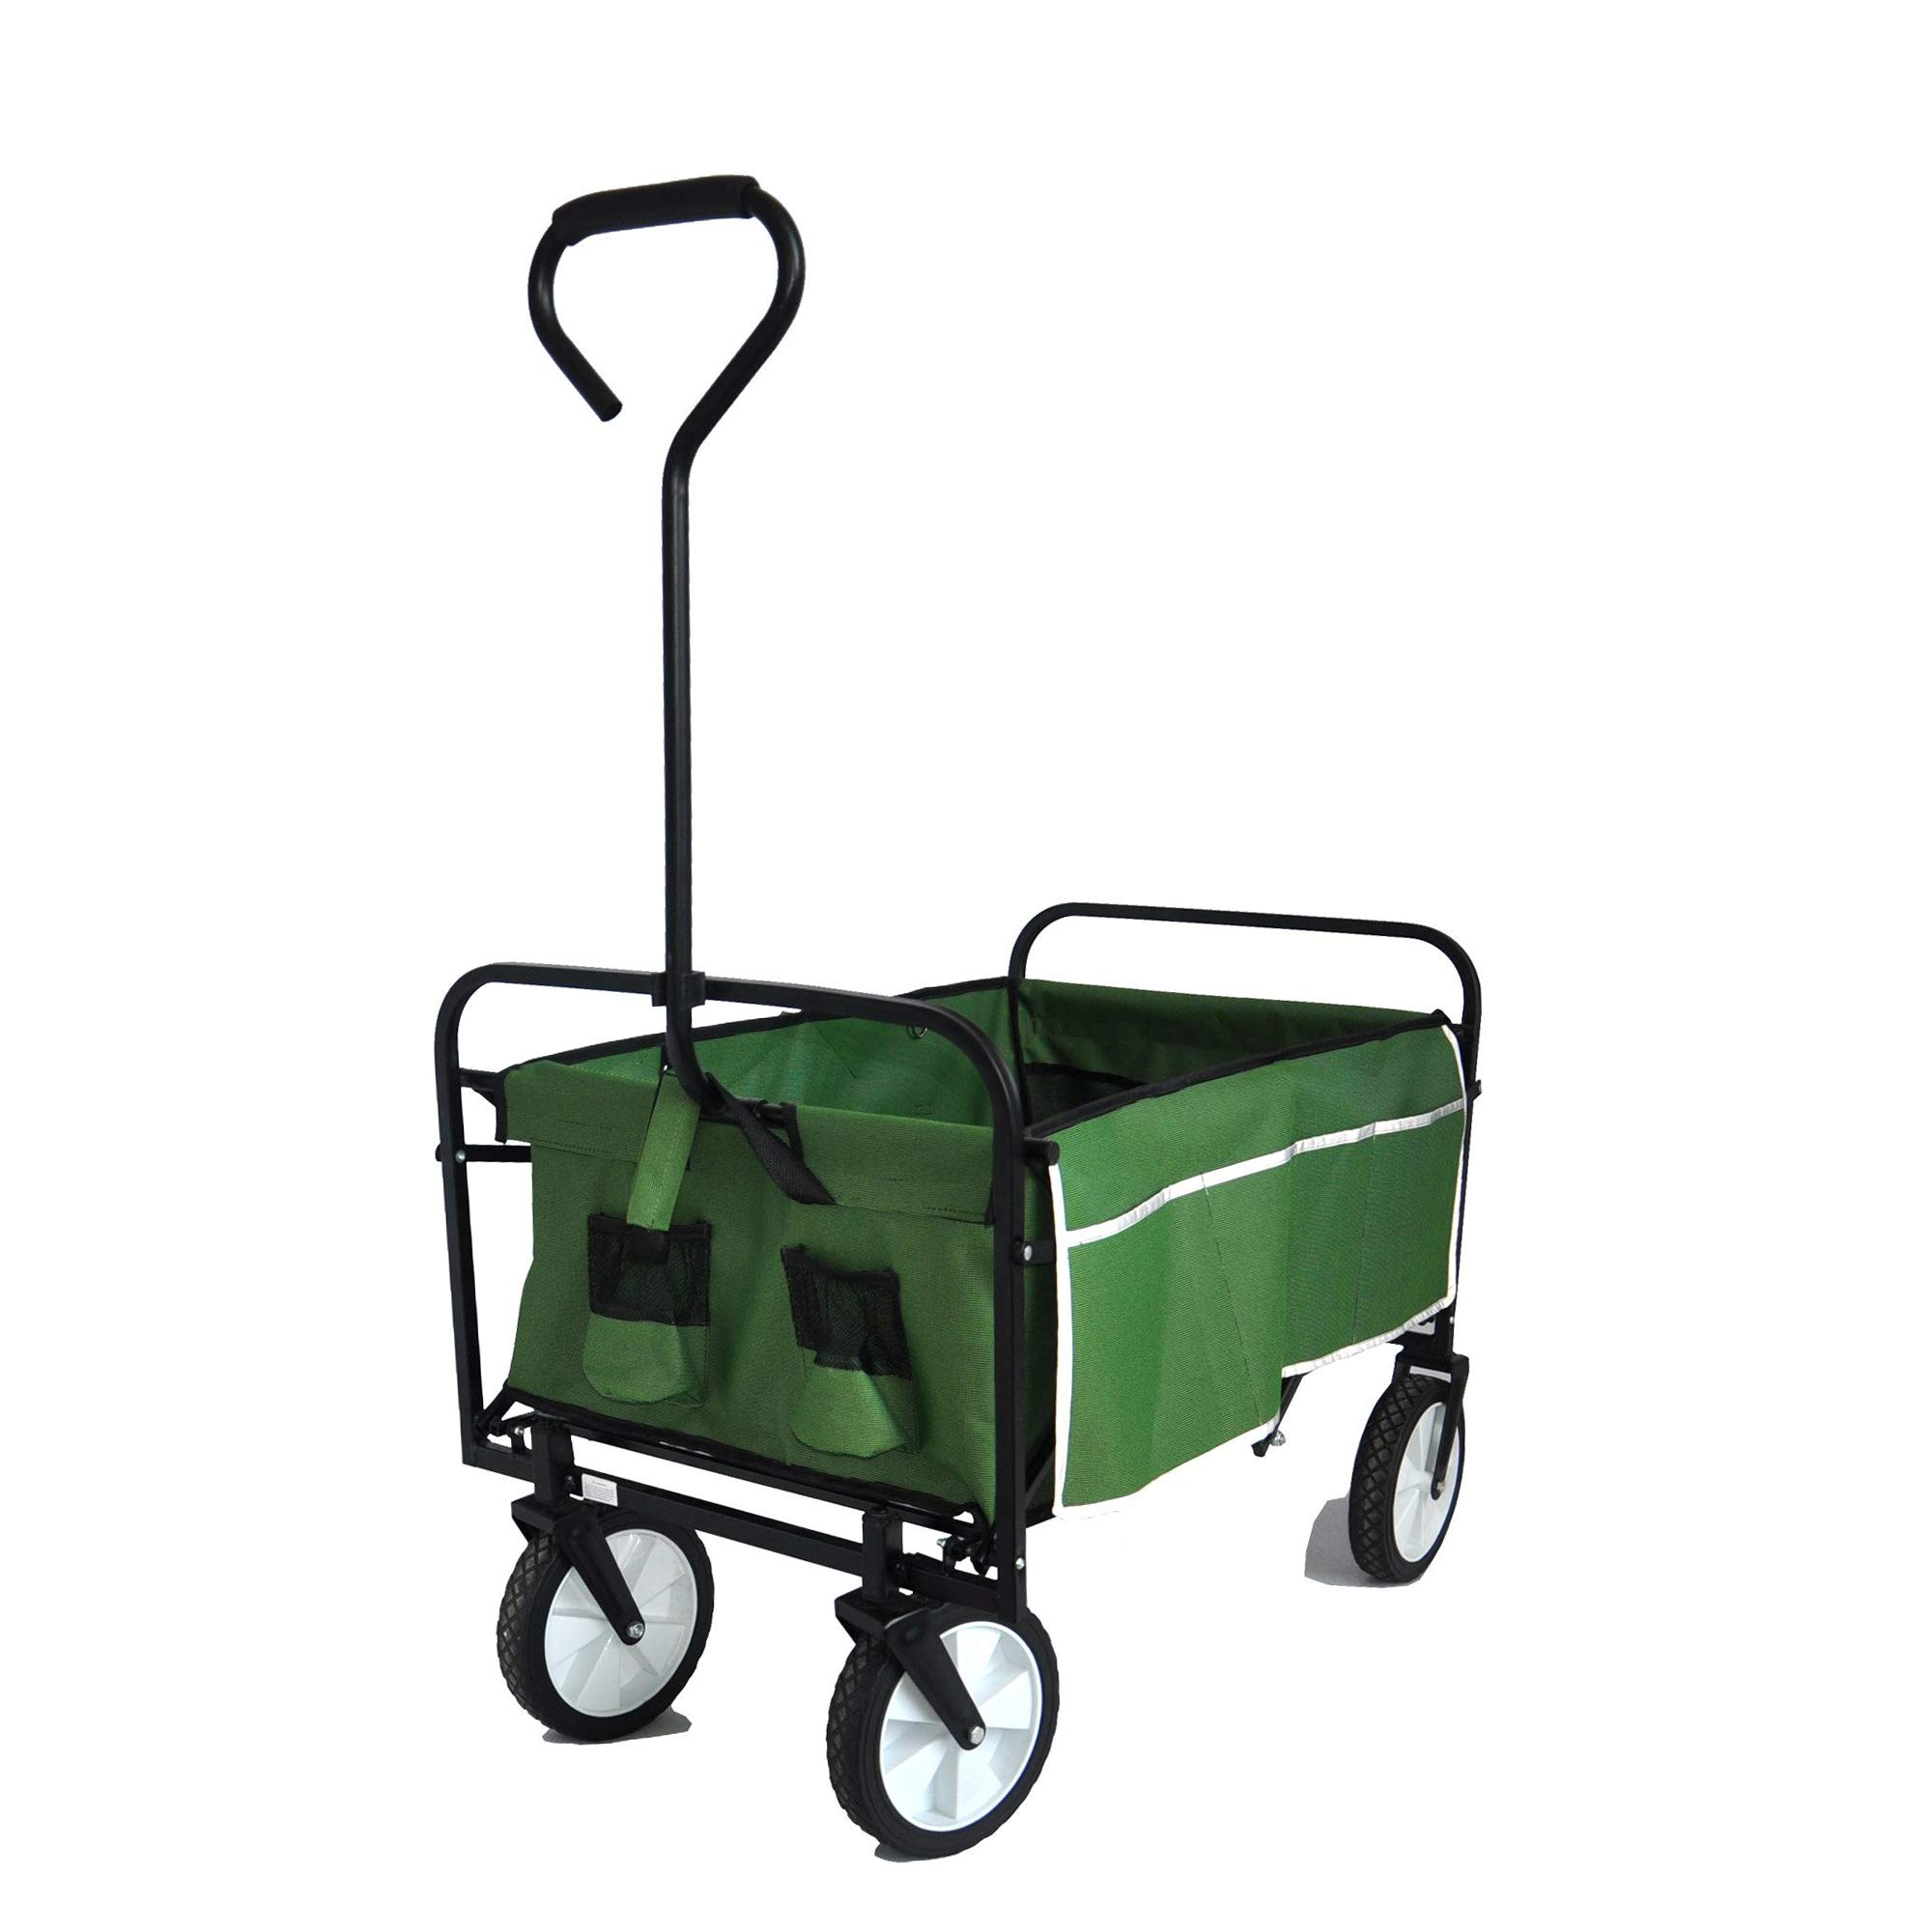 TKOOFN Collapsible Outdoor Utility Wagon, Folding Garden Portable Hand Cart, with Drink Holder, Perfect for Picnic Camping Beach Trip Shopping, Green by TKOOFN